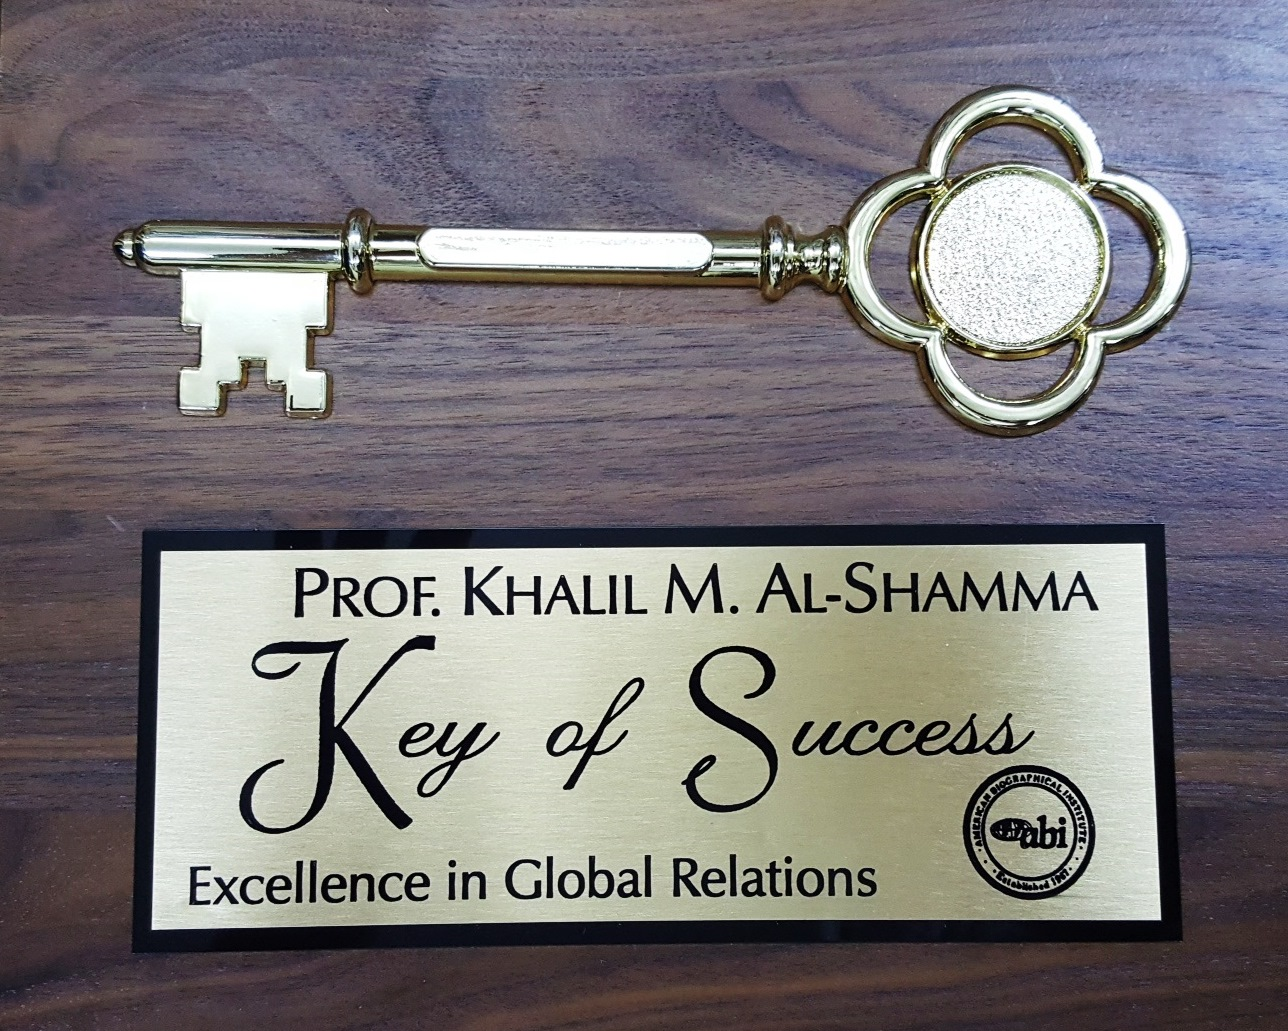 Keys of Success - Excellence in Global Relations